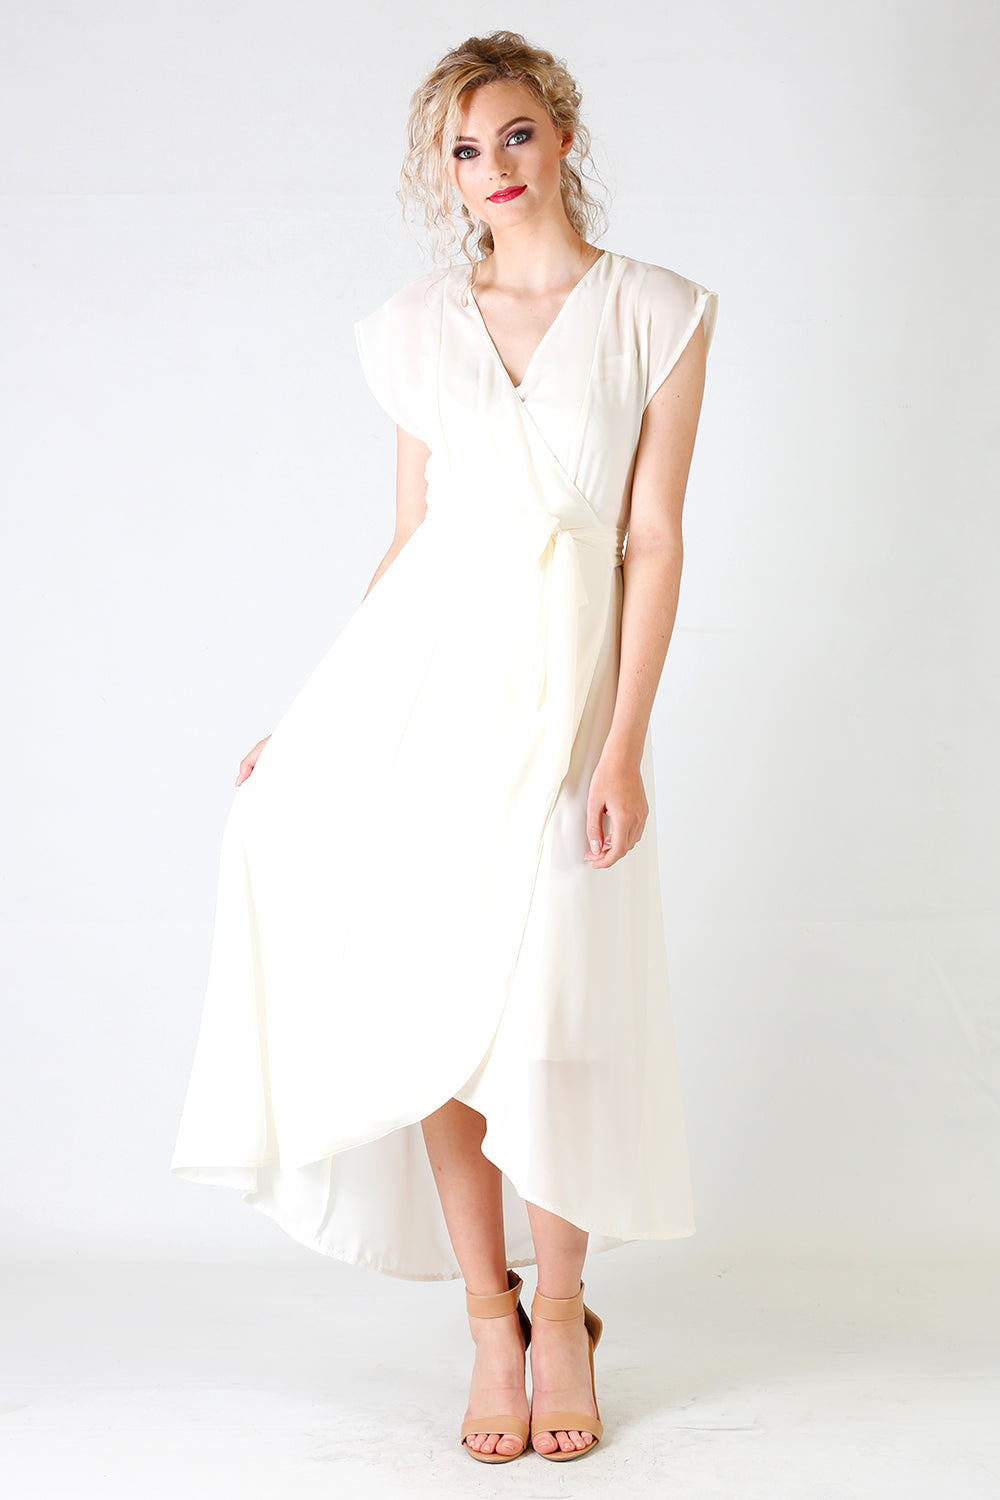 Gretchen Caris Dress | Sheer Designer Wrap Dresses | Annah S | Summer / Designer NZ / Bridal NZ / Bridal Party NZ / Wedding Dress NZ /